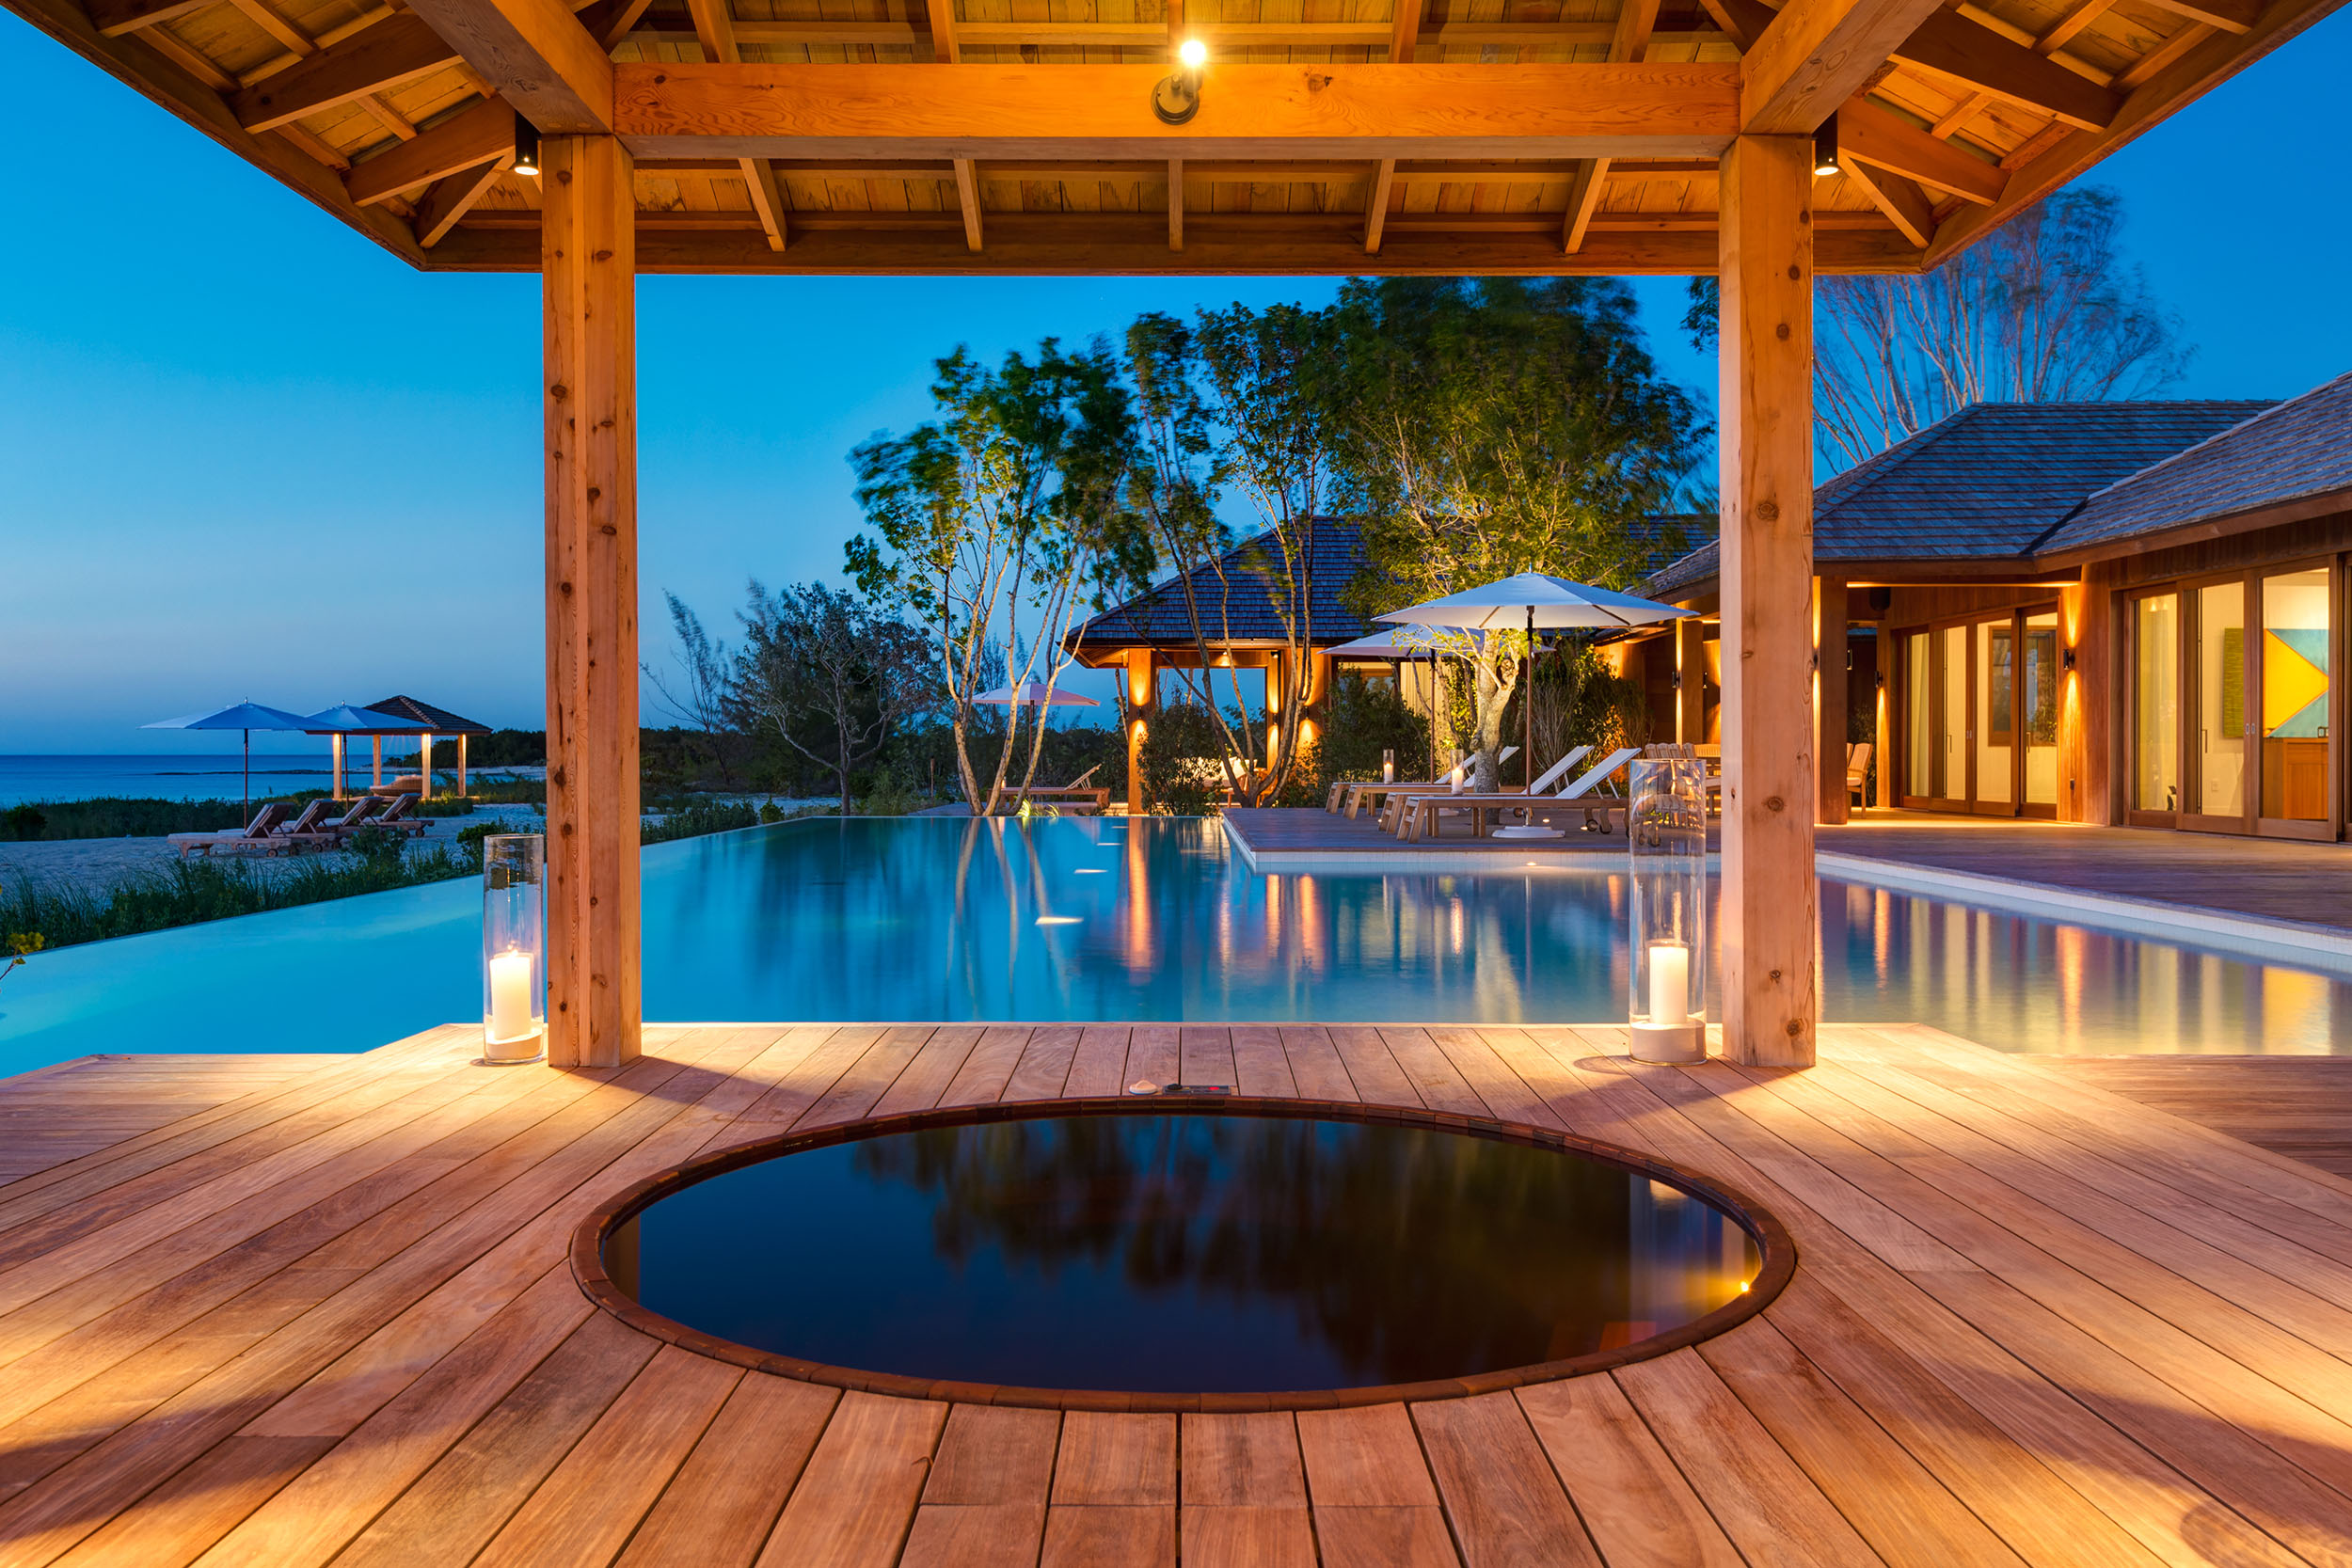 Serenity - evening view across the hot tub and pool